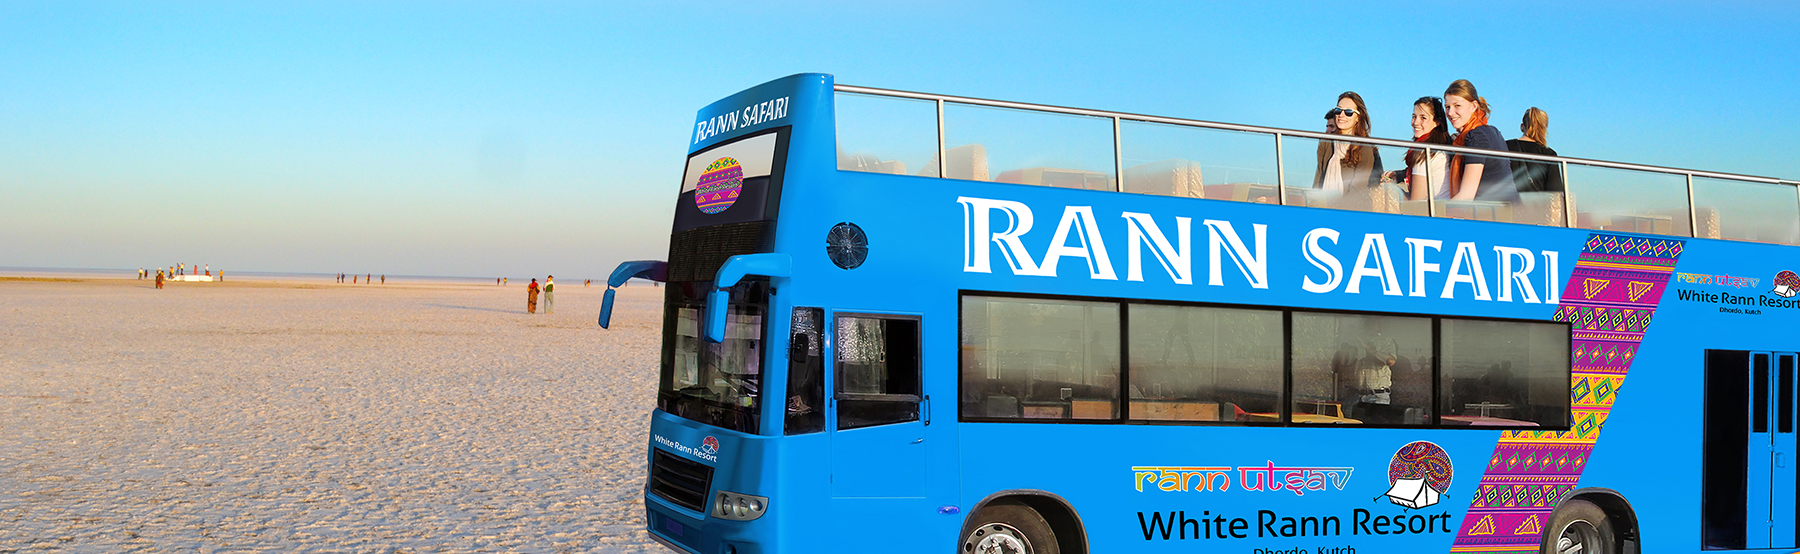 Rann Safari-Double decor Bus